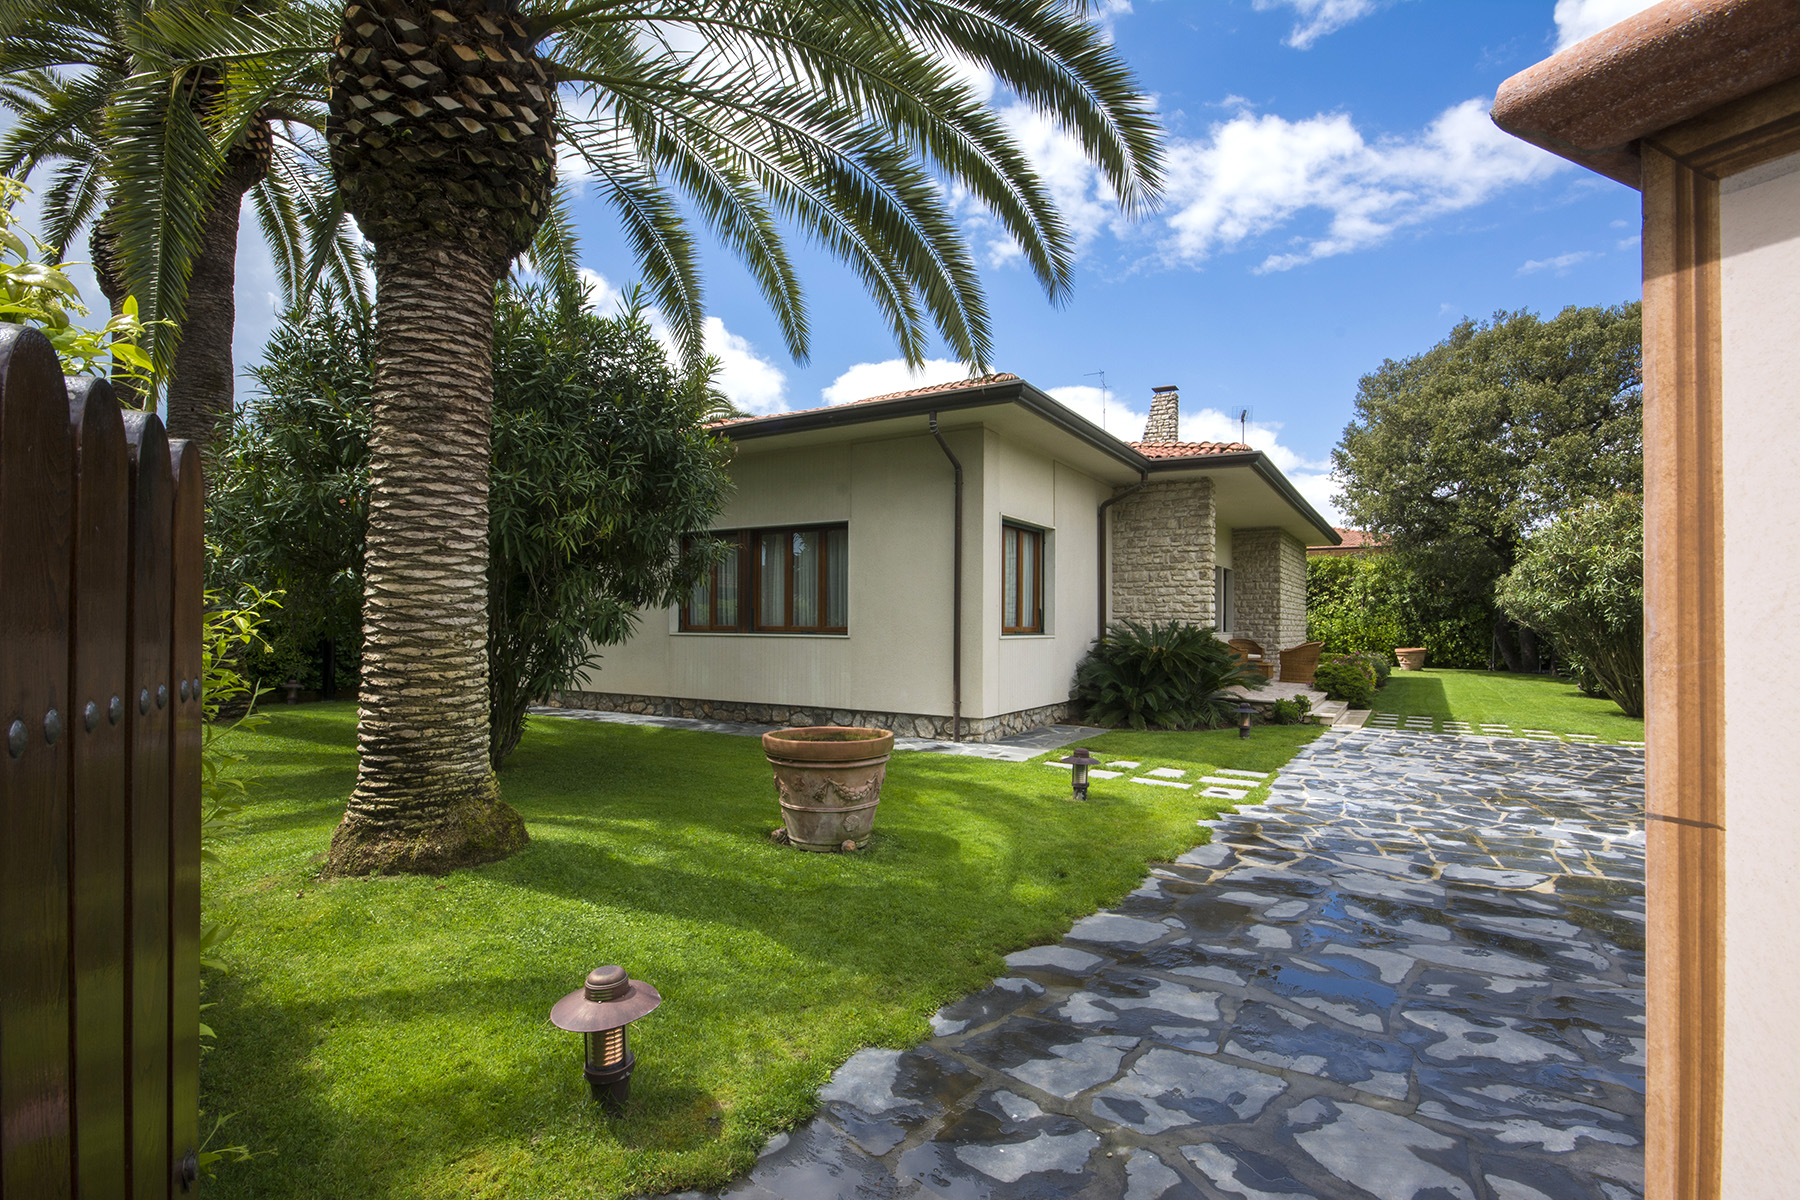 Single Family Home for Sale at Beautiful villa with garden near the sea Forte Dei Marmi, Italy